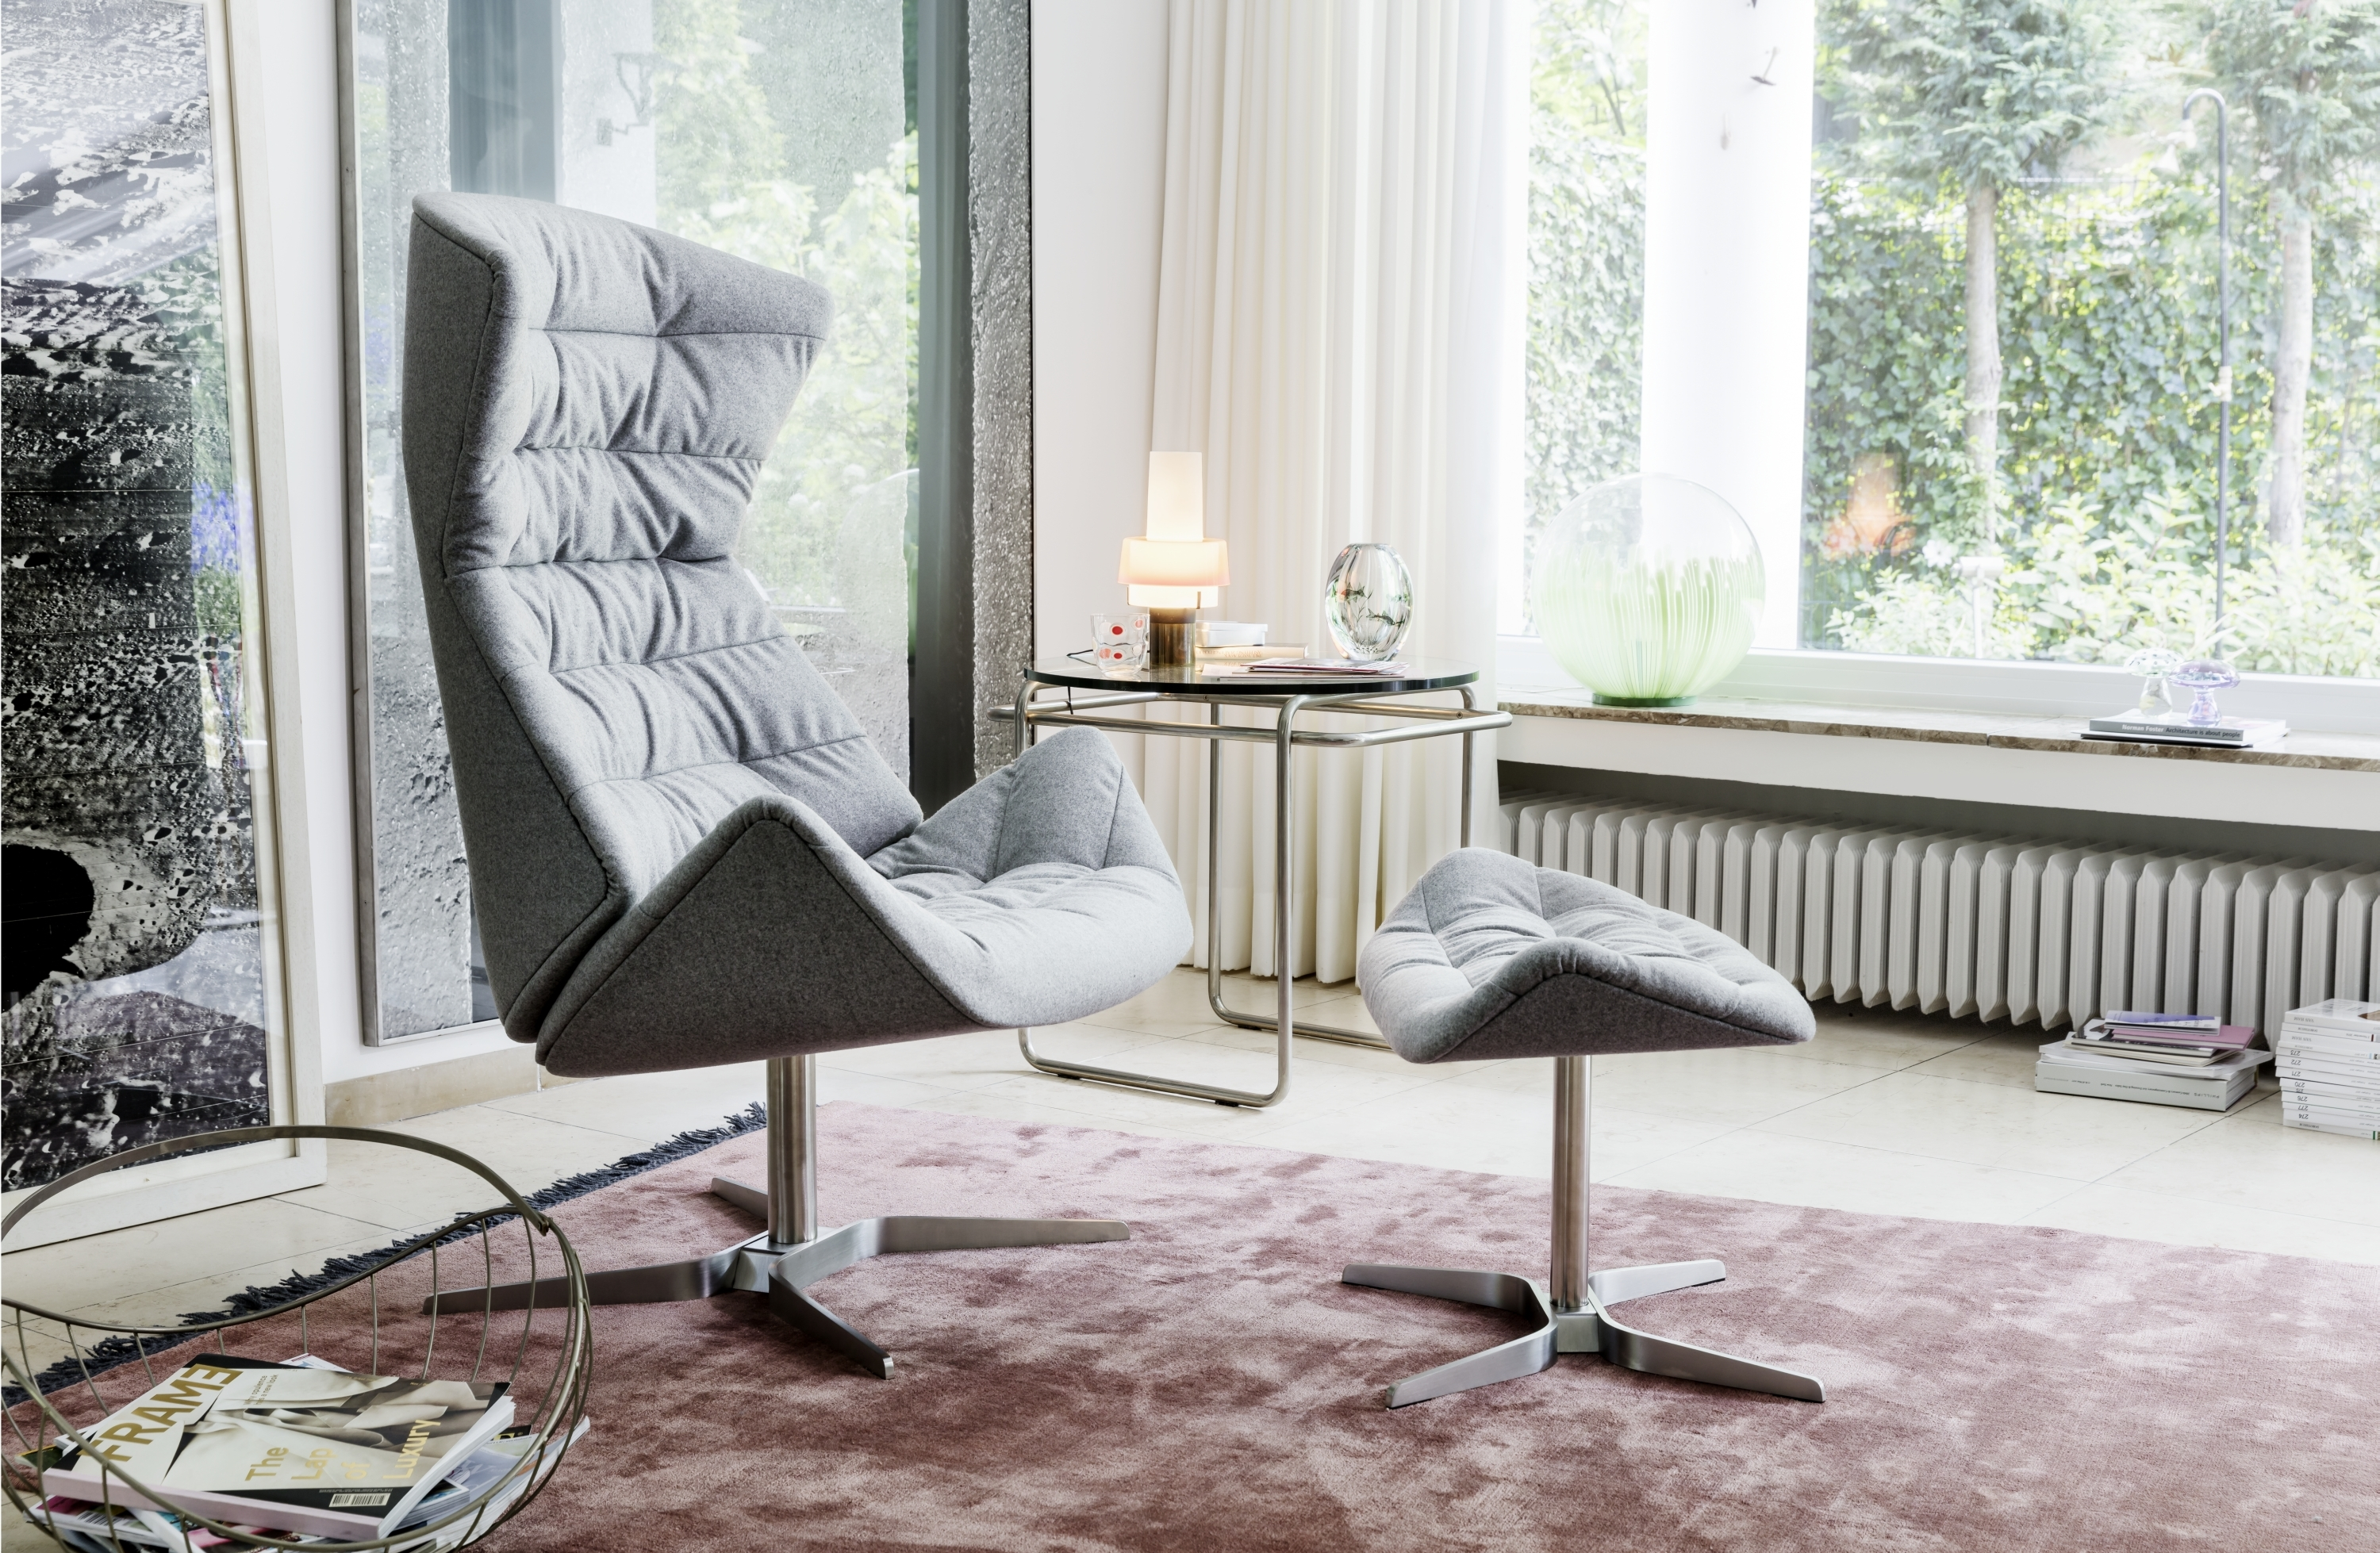 Lounge-sessel 808 808 By Thonet Stylepark